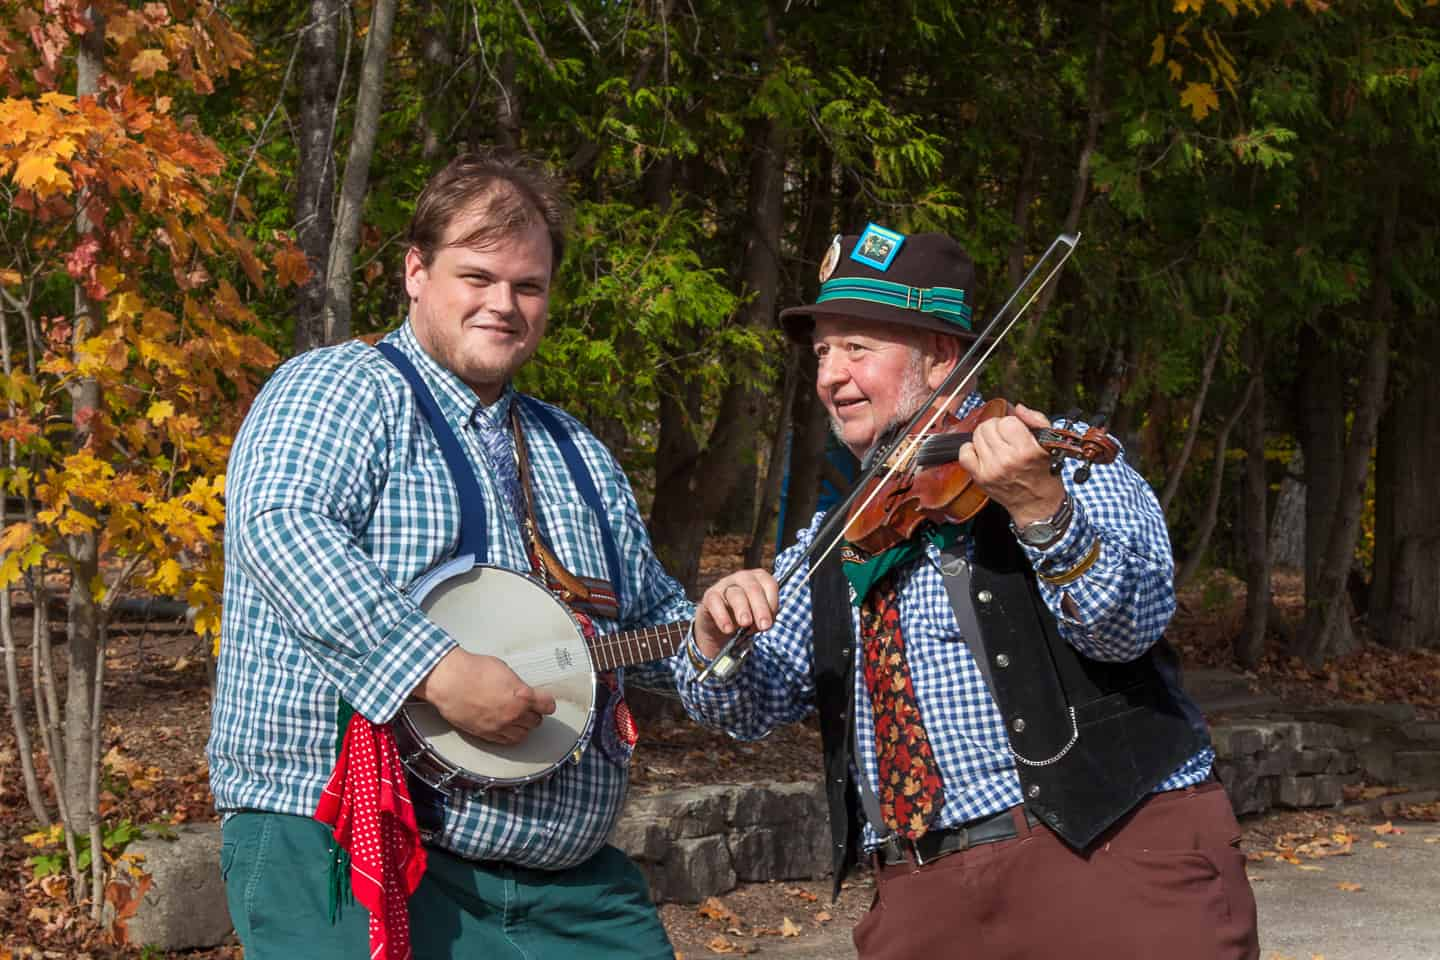 two people paying instruments in the outdoors